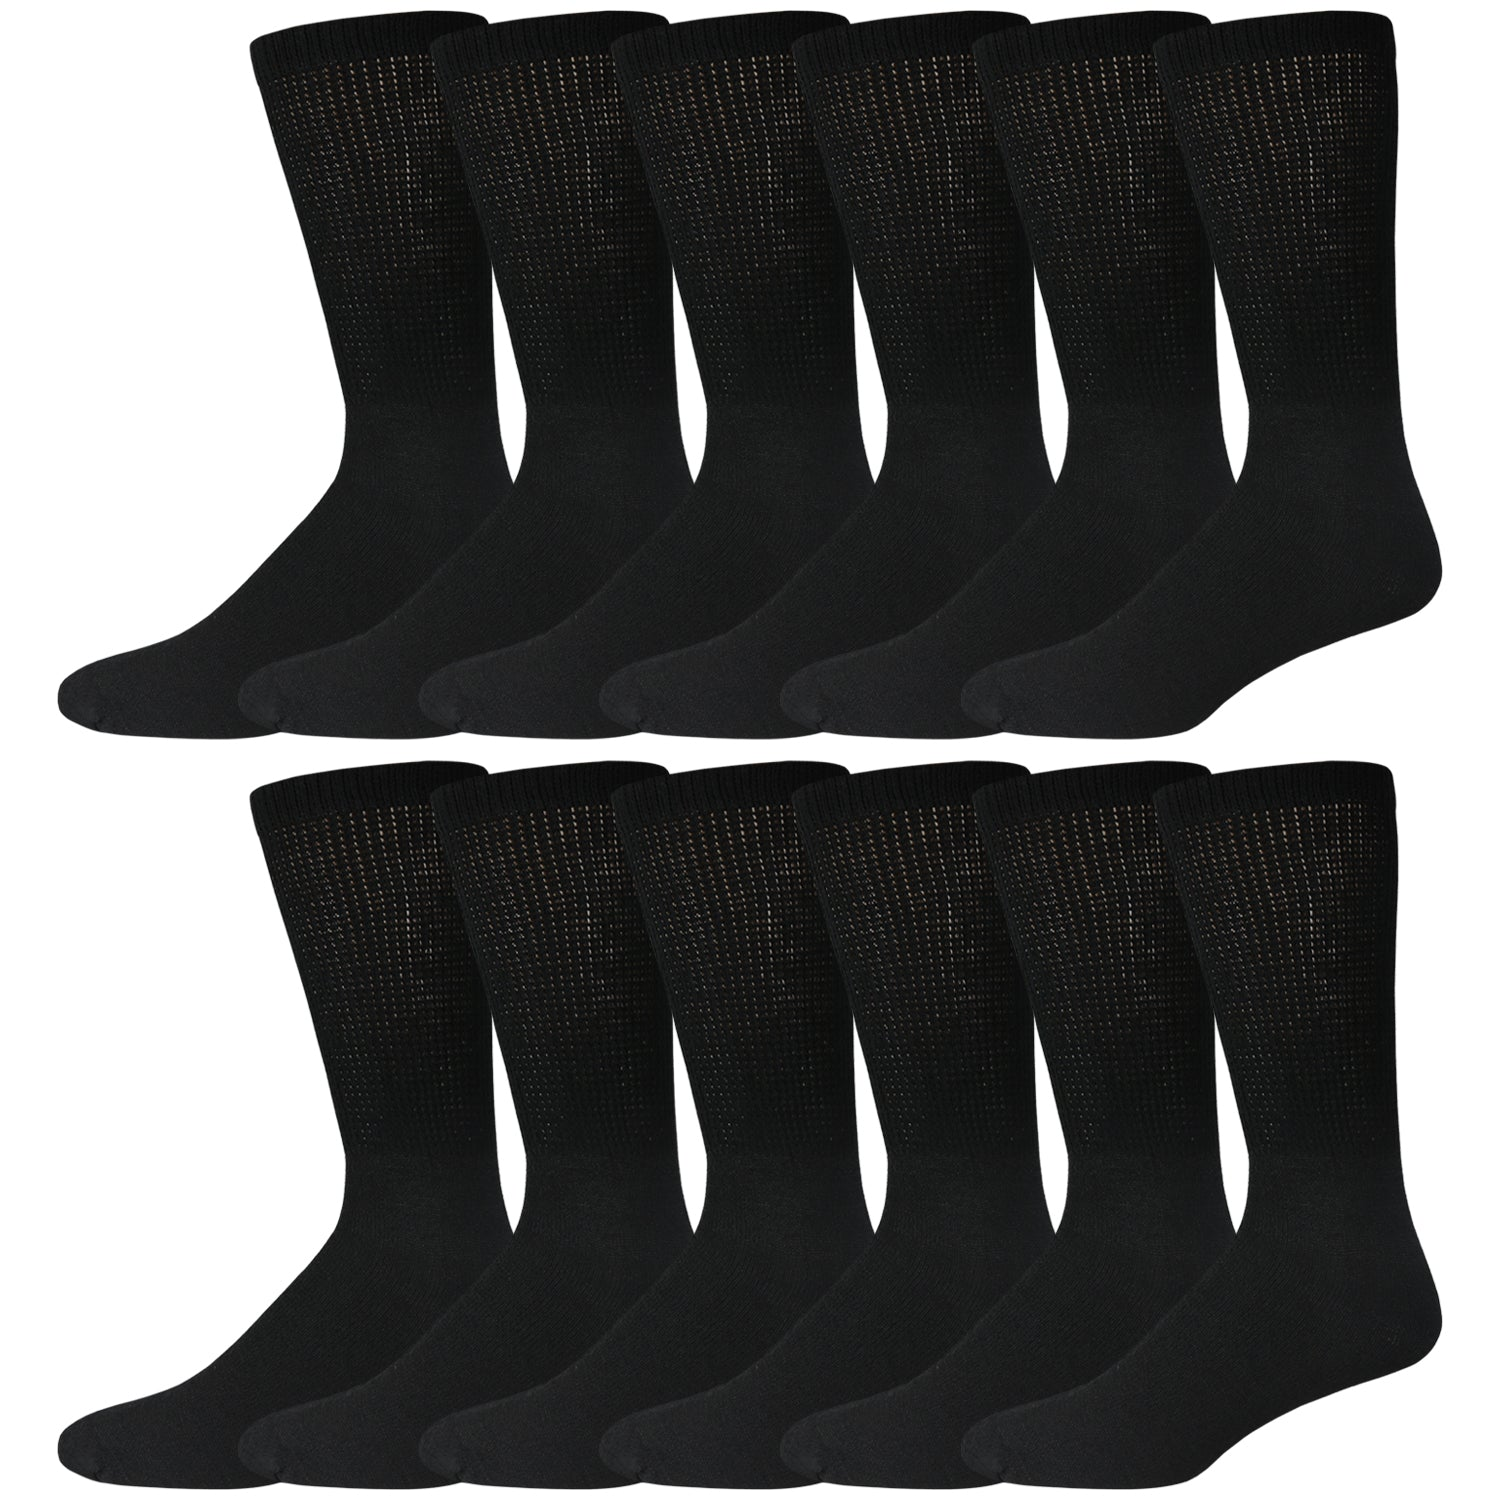 Black Cotton Diabetic Crew Socks With Loose Top 12 Pack